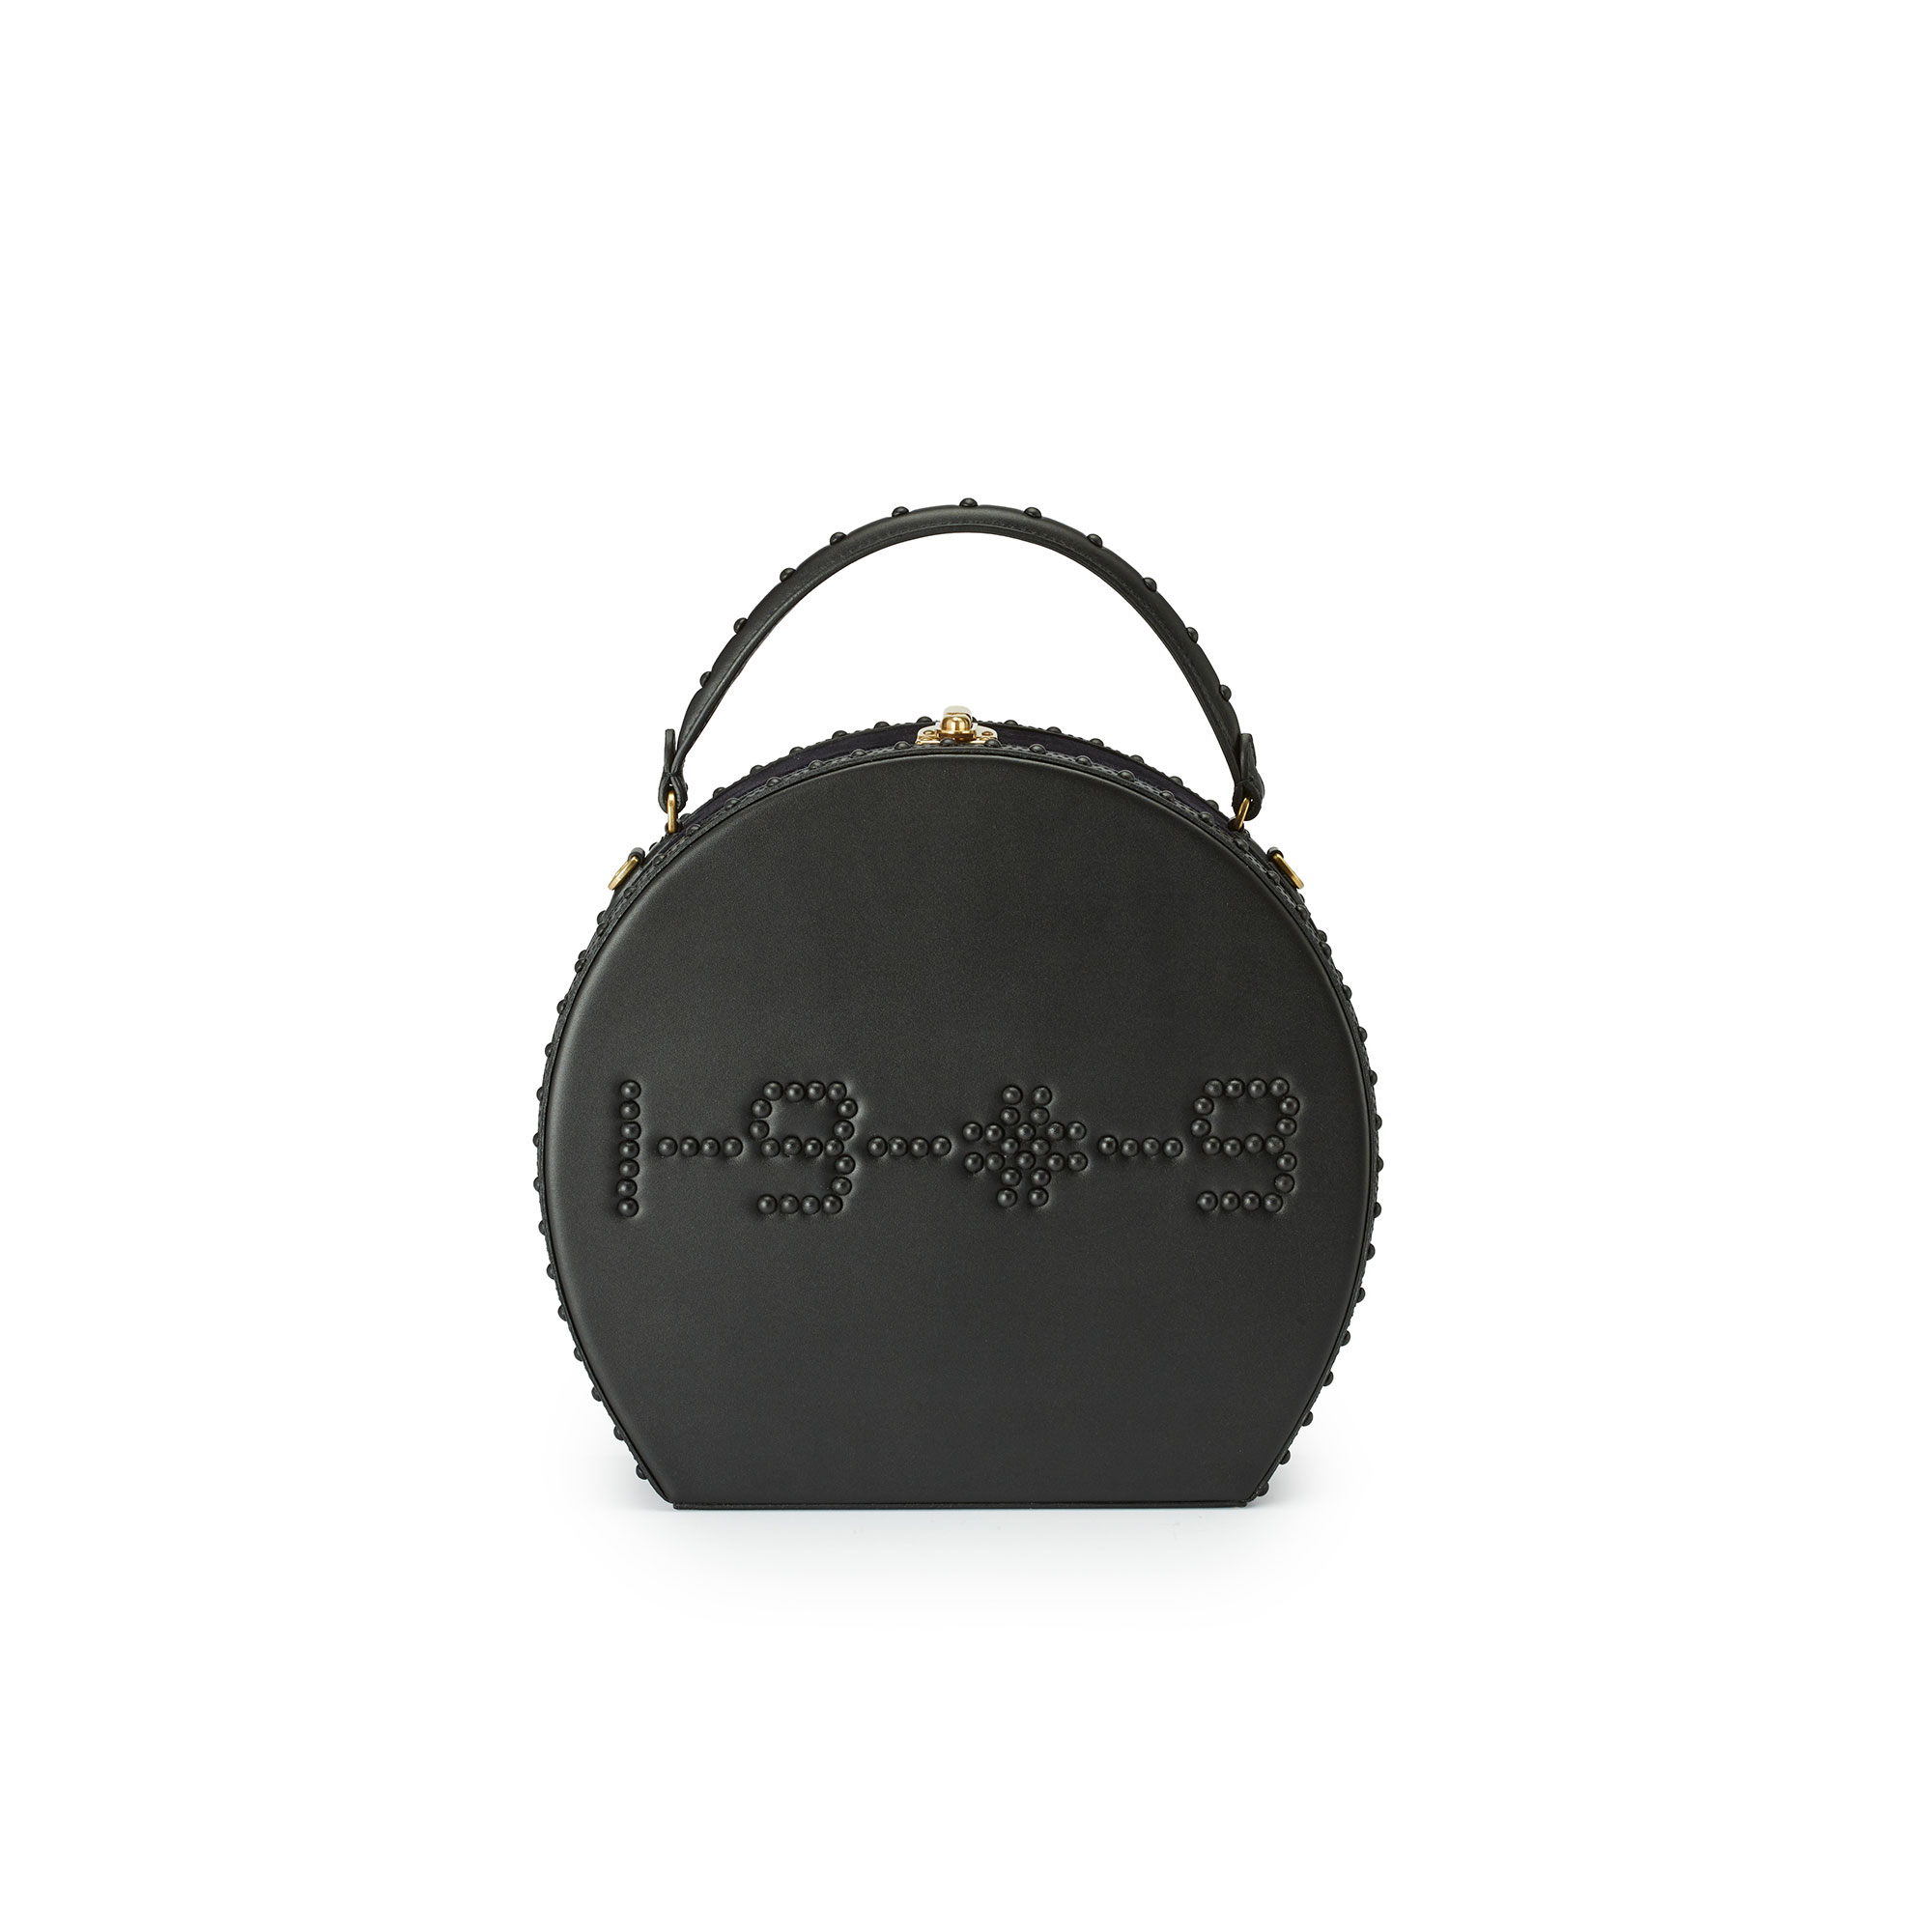 Large-Bertoncina-black-french-calf-bag-Bertoni-1949_01